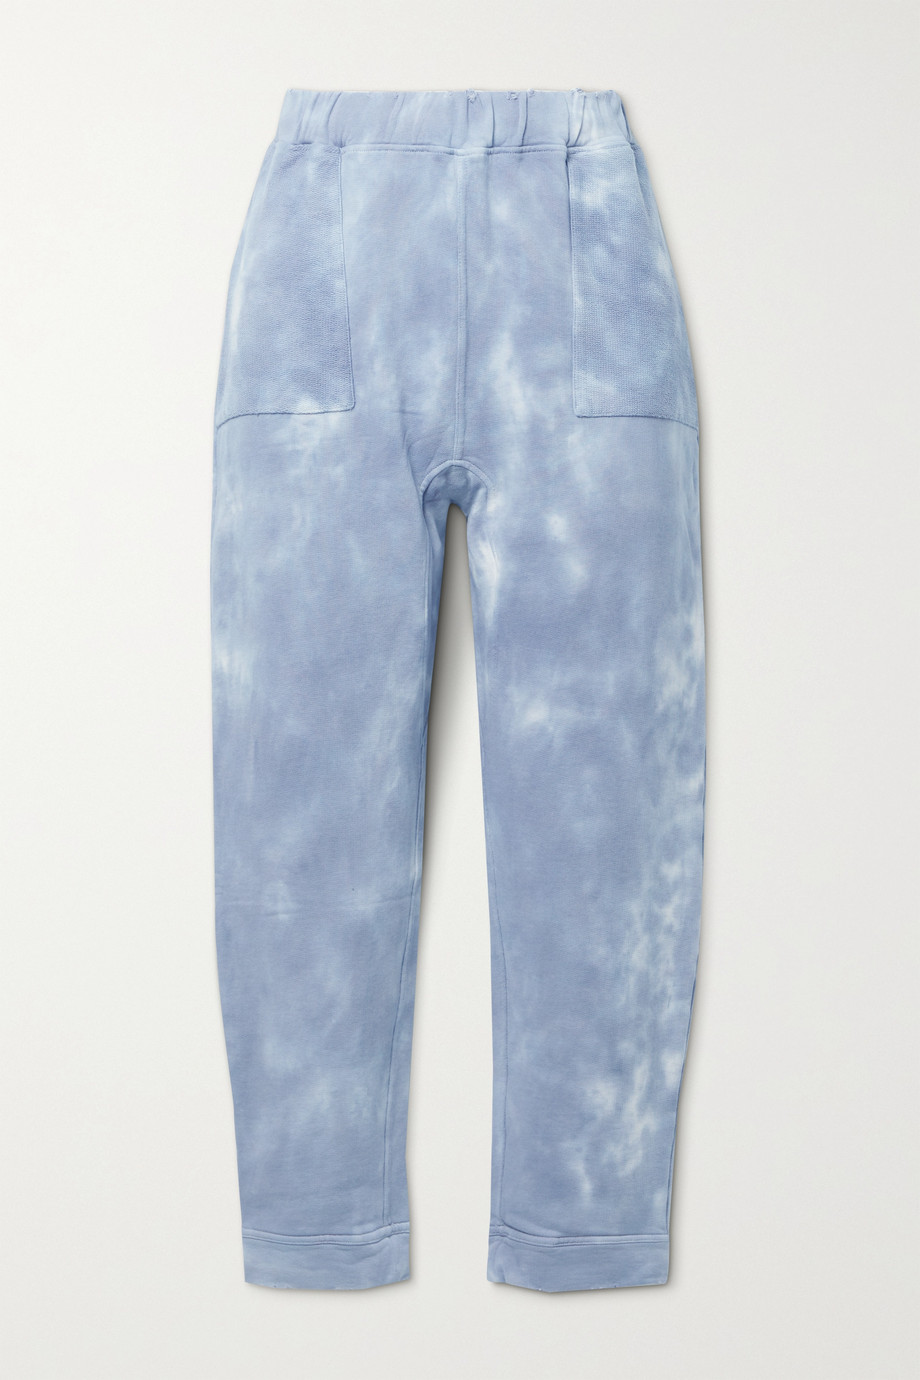 LoveShackFancy Blex distressed paneled tie-dyed cotton-jersey track pants